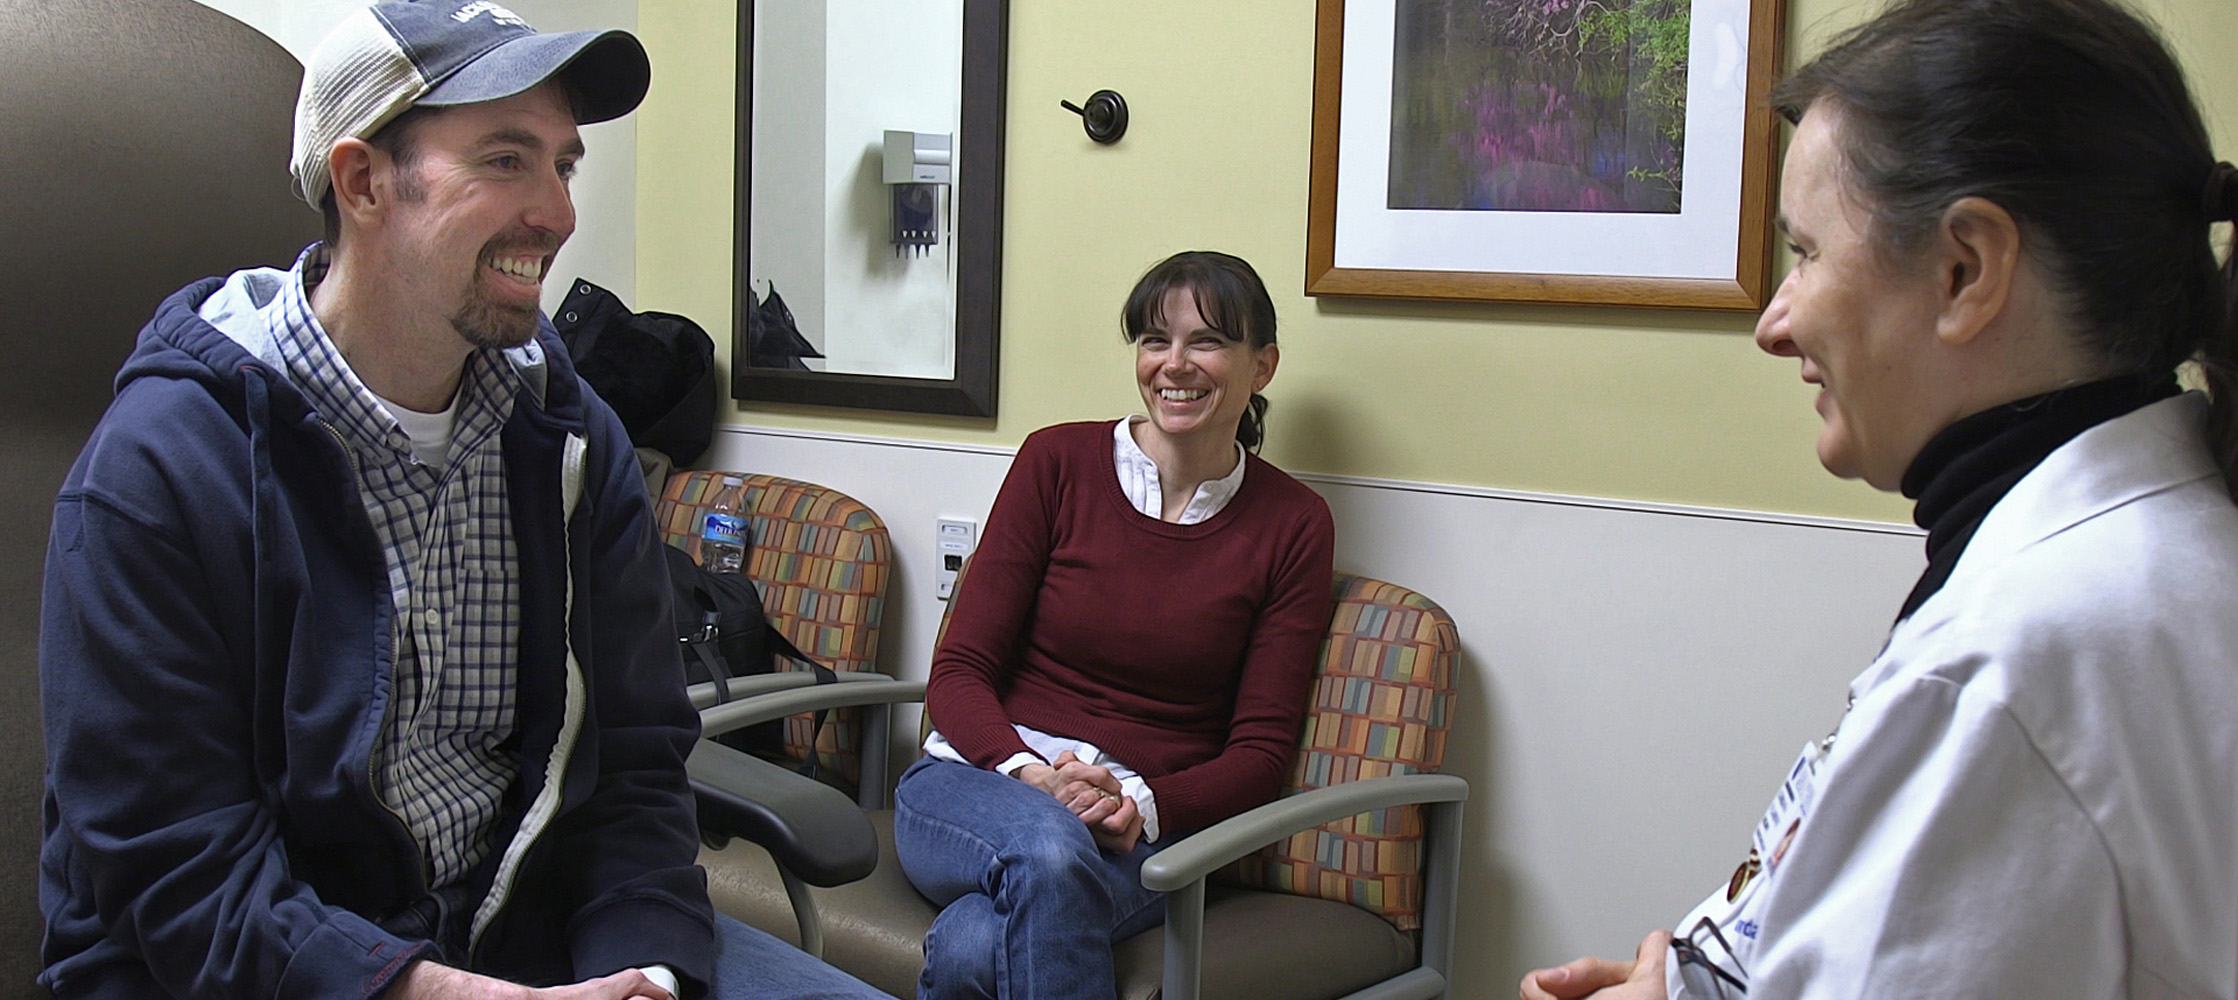 Brendan Steele and his wife meet with his neuro-oncologist Gordana Vlahovic, MD.